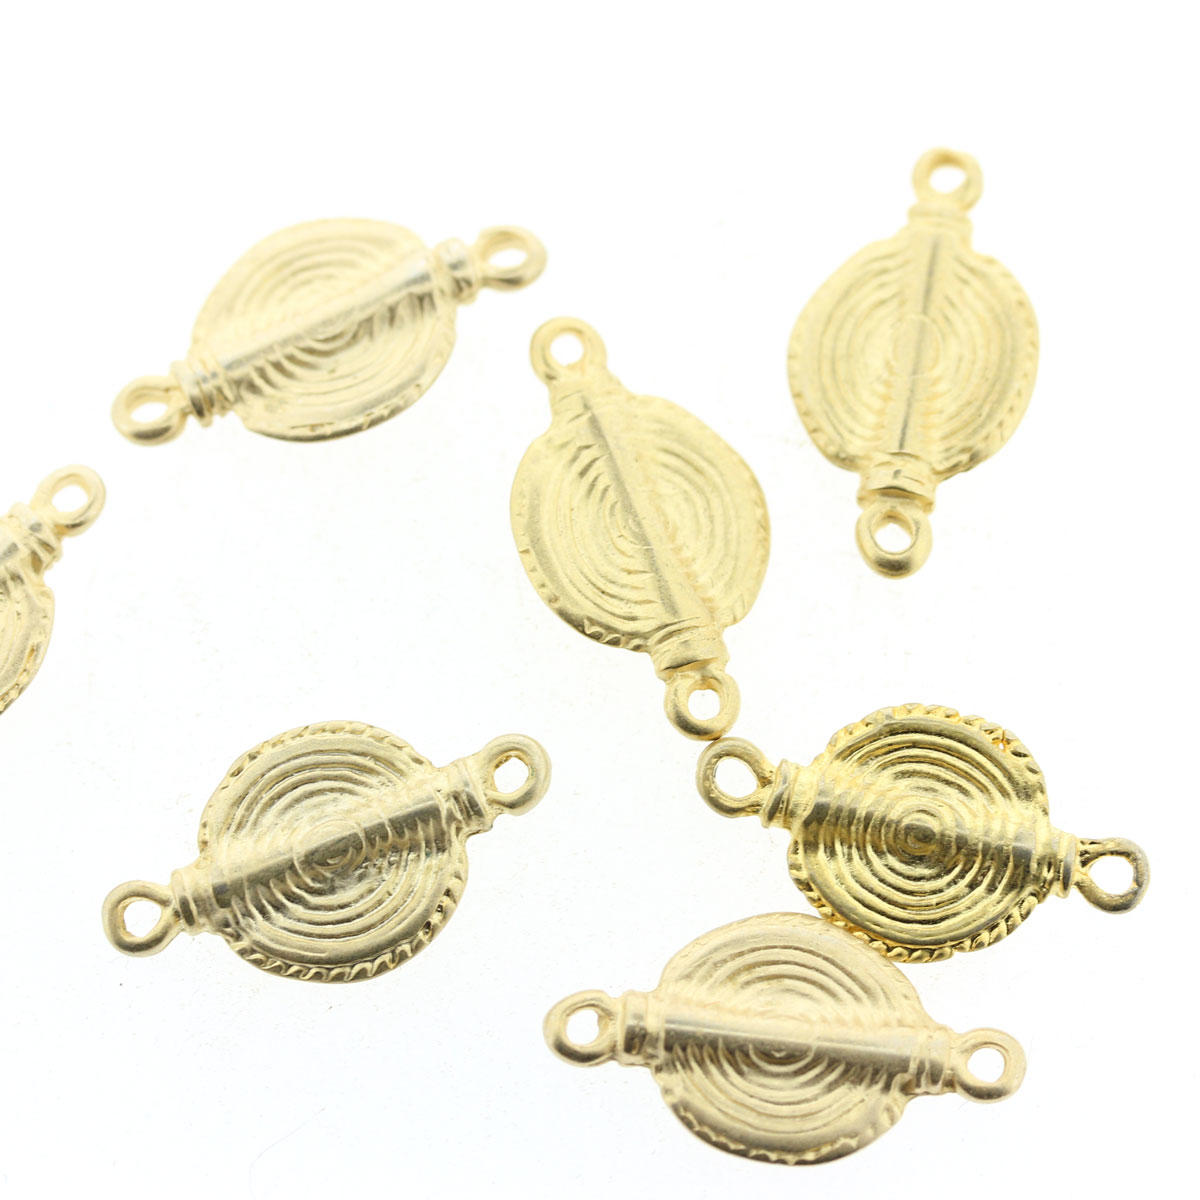 Gold Two Holed Swirl Connector Charm